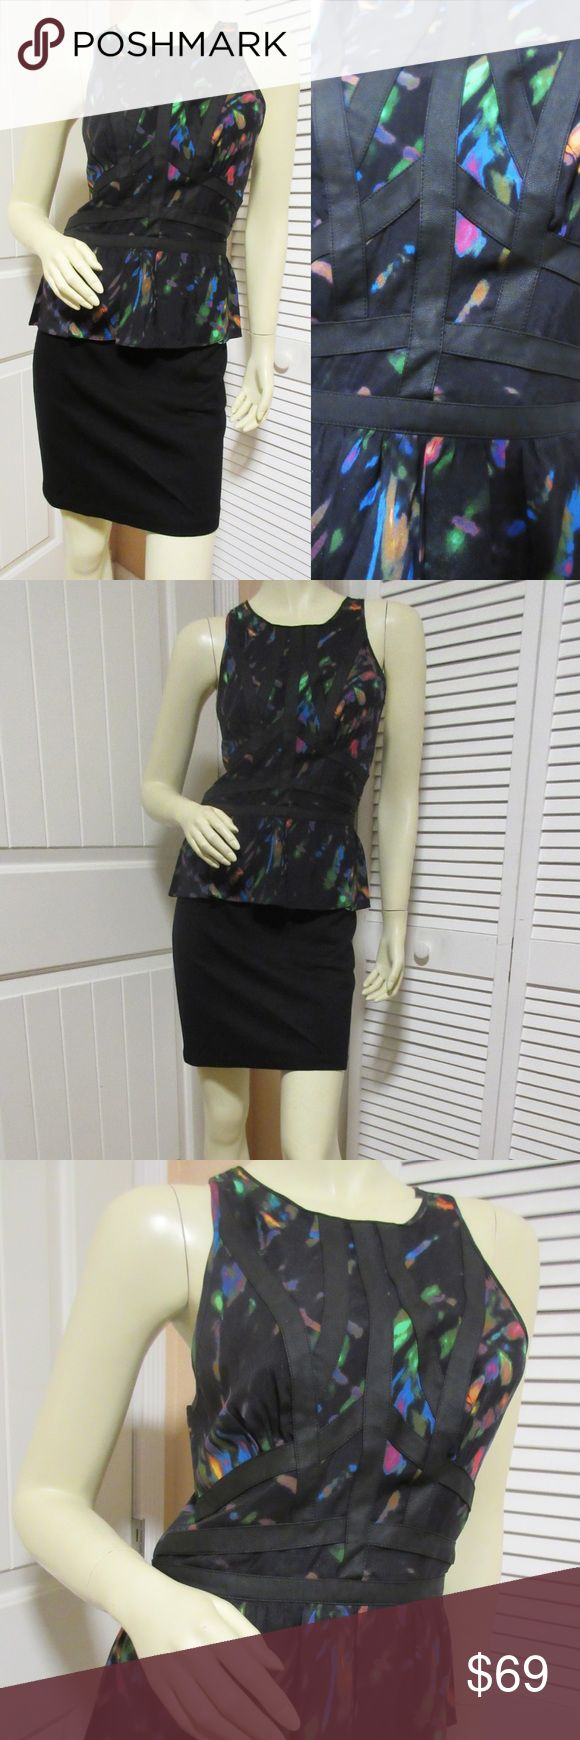 """CHARLIE JADE Womens Black Neon Sheath Peplum Dress CHARLIE JADE Womens Little Black Dress - Sleeveless Sheath Peplum Dress Pencil Skirt Cut. Suede-like bandage strips trim, neon color pattern. In overall great condition, preowned, slight scuff mark at upper back, slight runs at upper back shoulder, hardly visible. UPPER 92% SILK 8% Spandex, BOTTOM 72% Rayon 24% Nylon 4% Spandex, LINING 100% Polyester.   Size SMALL. BUST (pit to pit) 17"""" across unstretched, 18"""" across stretched, LENGTH…"""